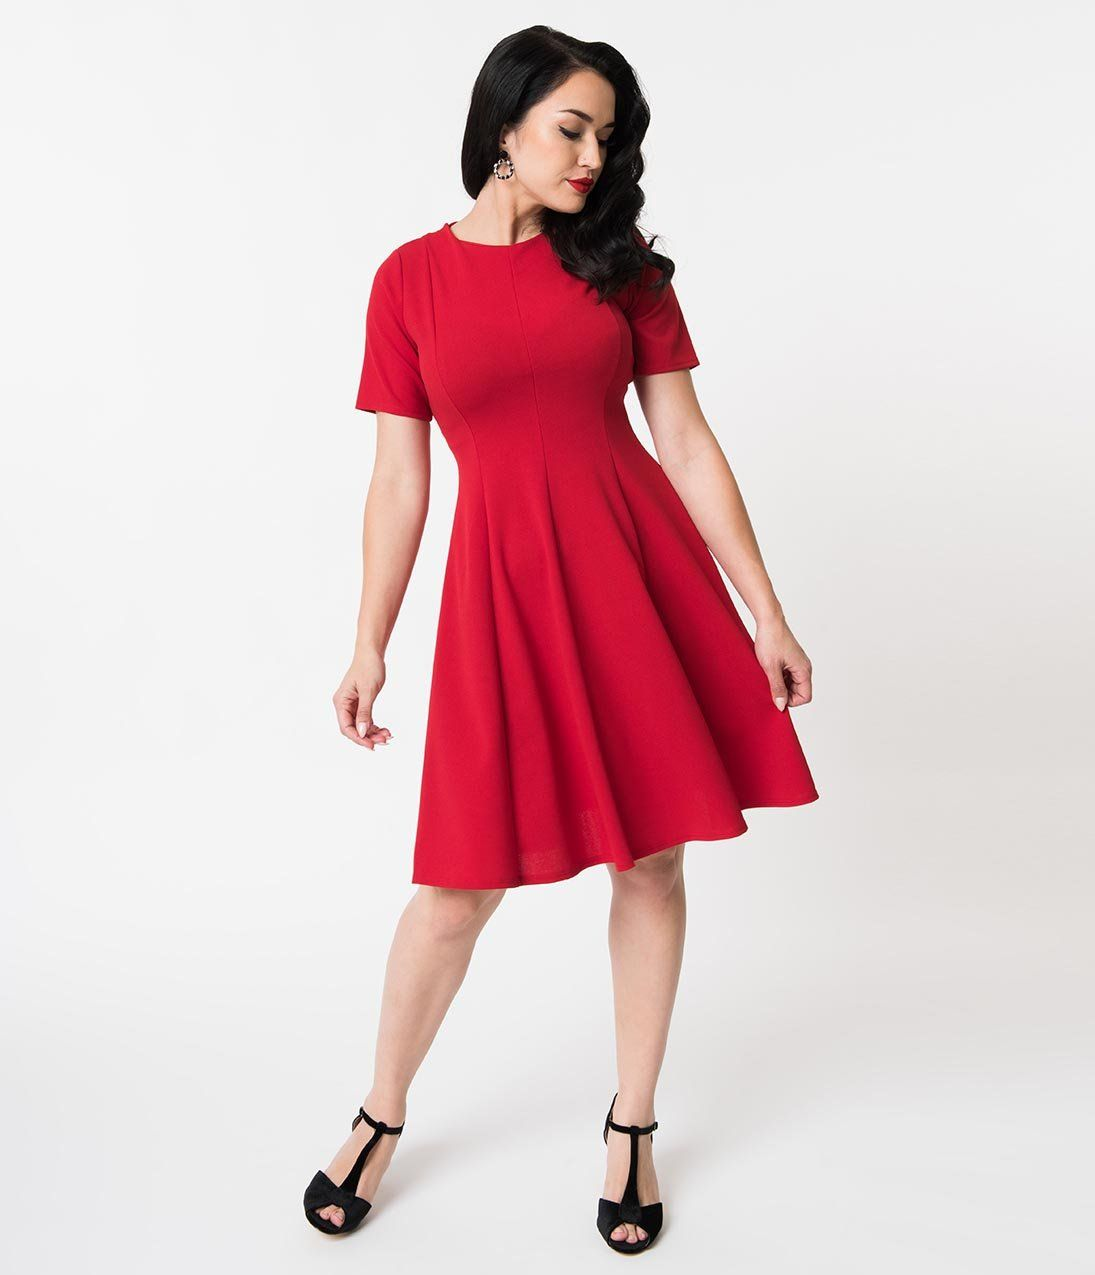 Retro Style Red Knit Sleeved Fit And Flare Dress Unique Vintage Fit And Flare Dress Flare Dress Casual Retro Inspired Dress